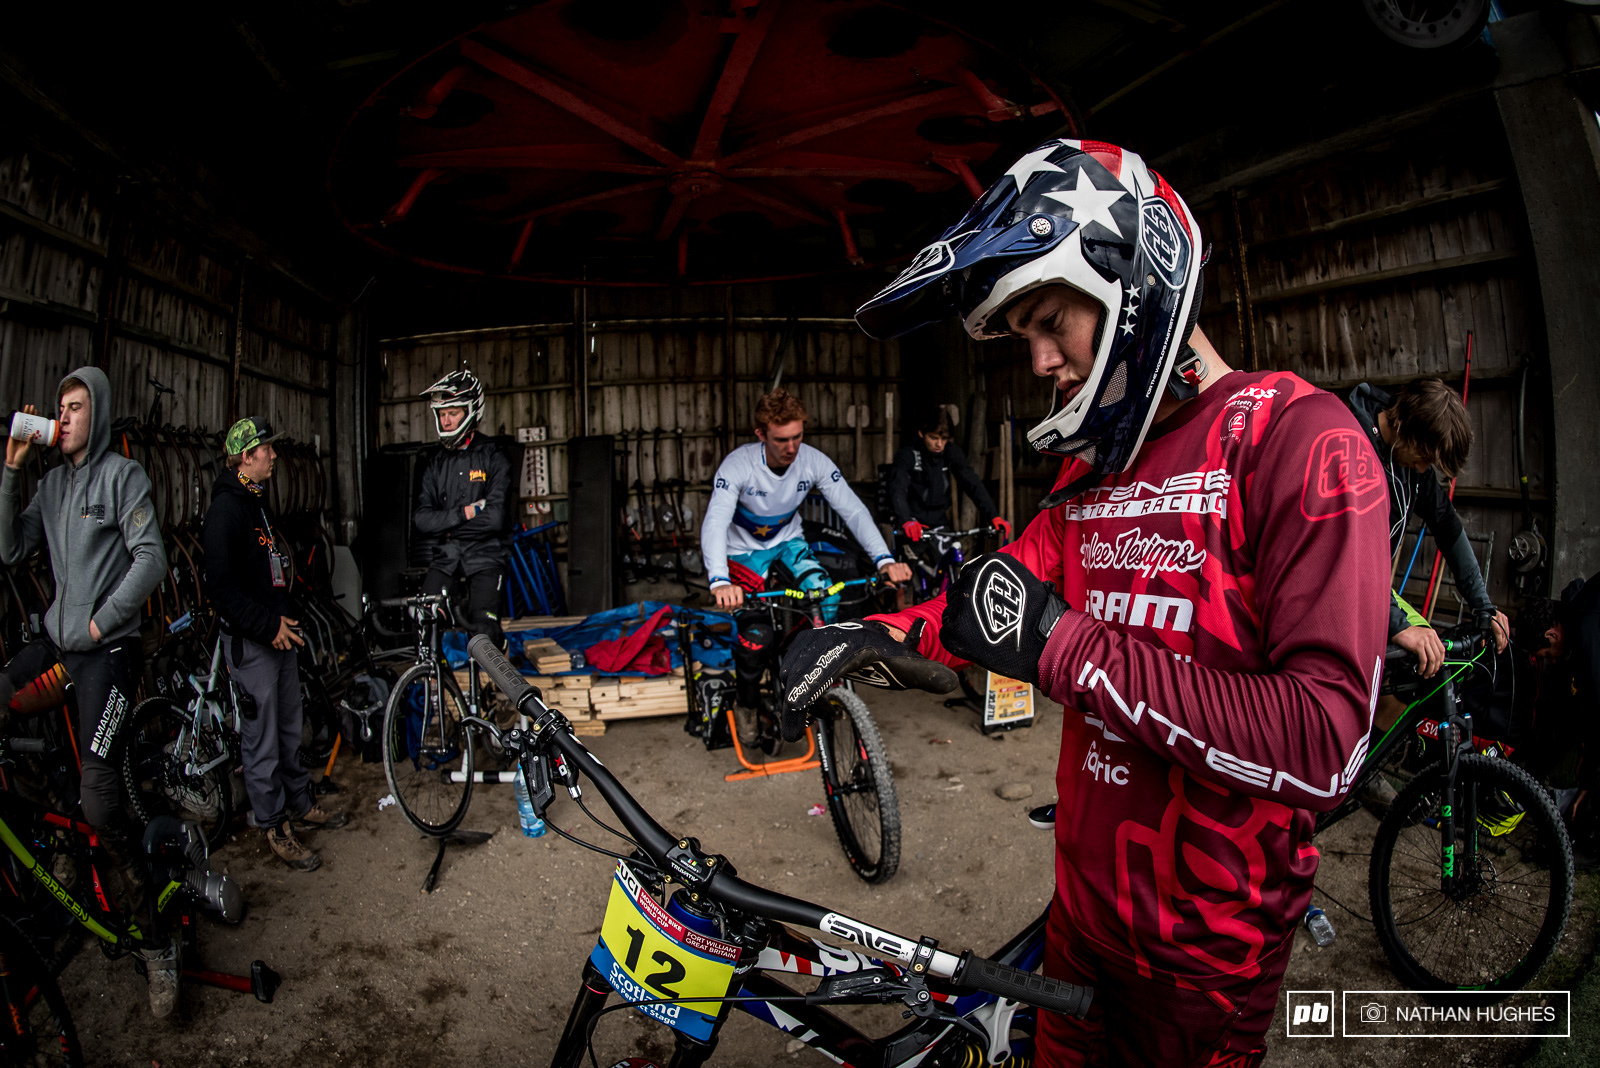 Nik Nestoroff prepares for battle in the warm up shed up top.